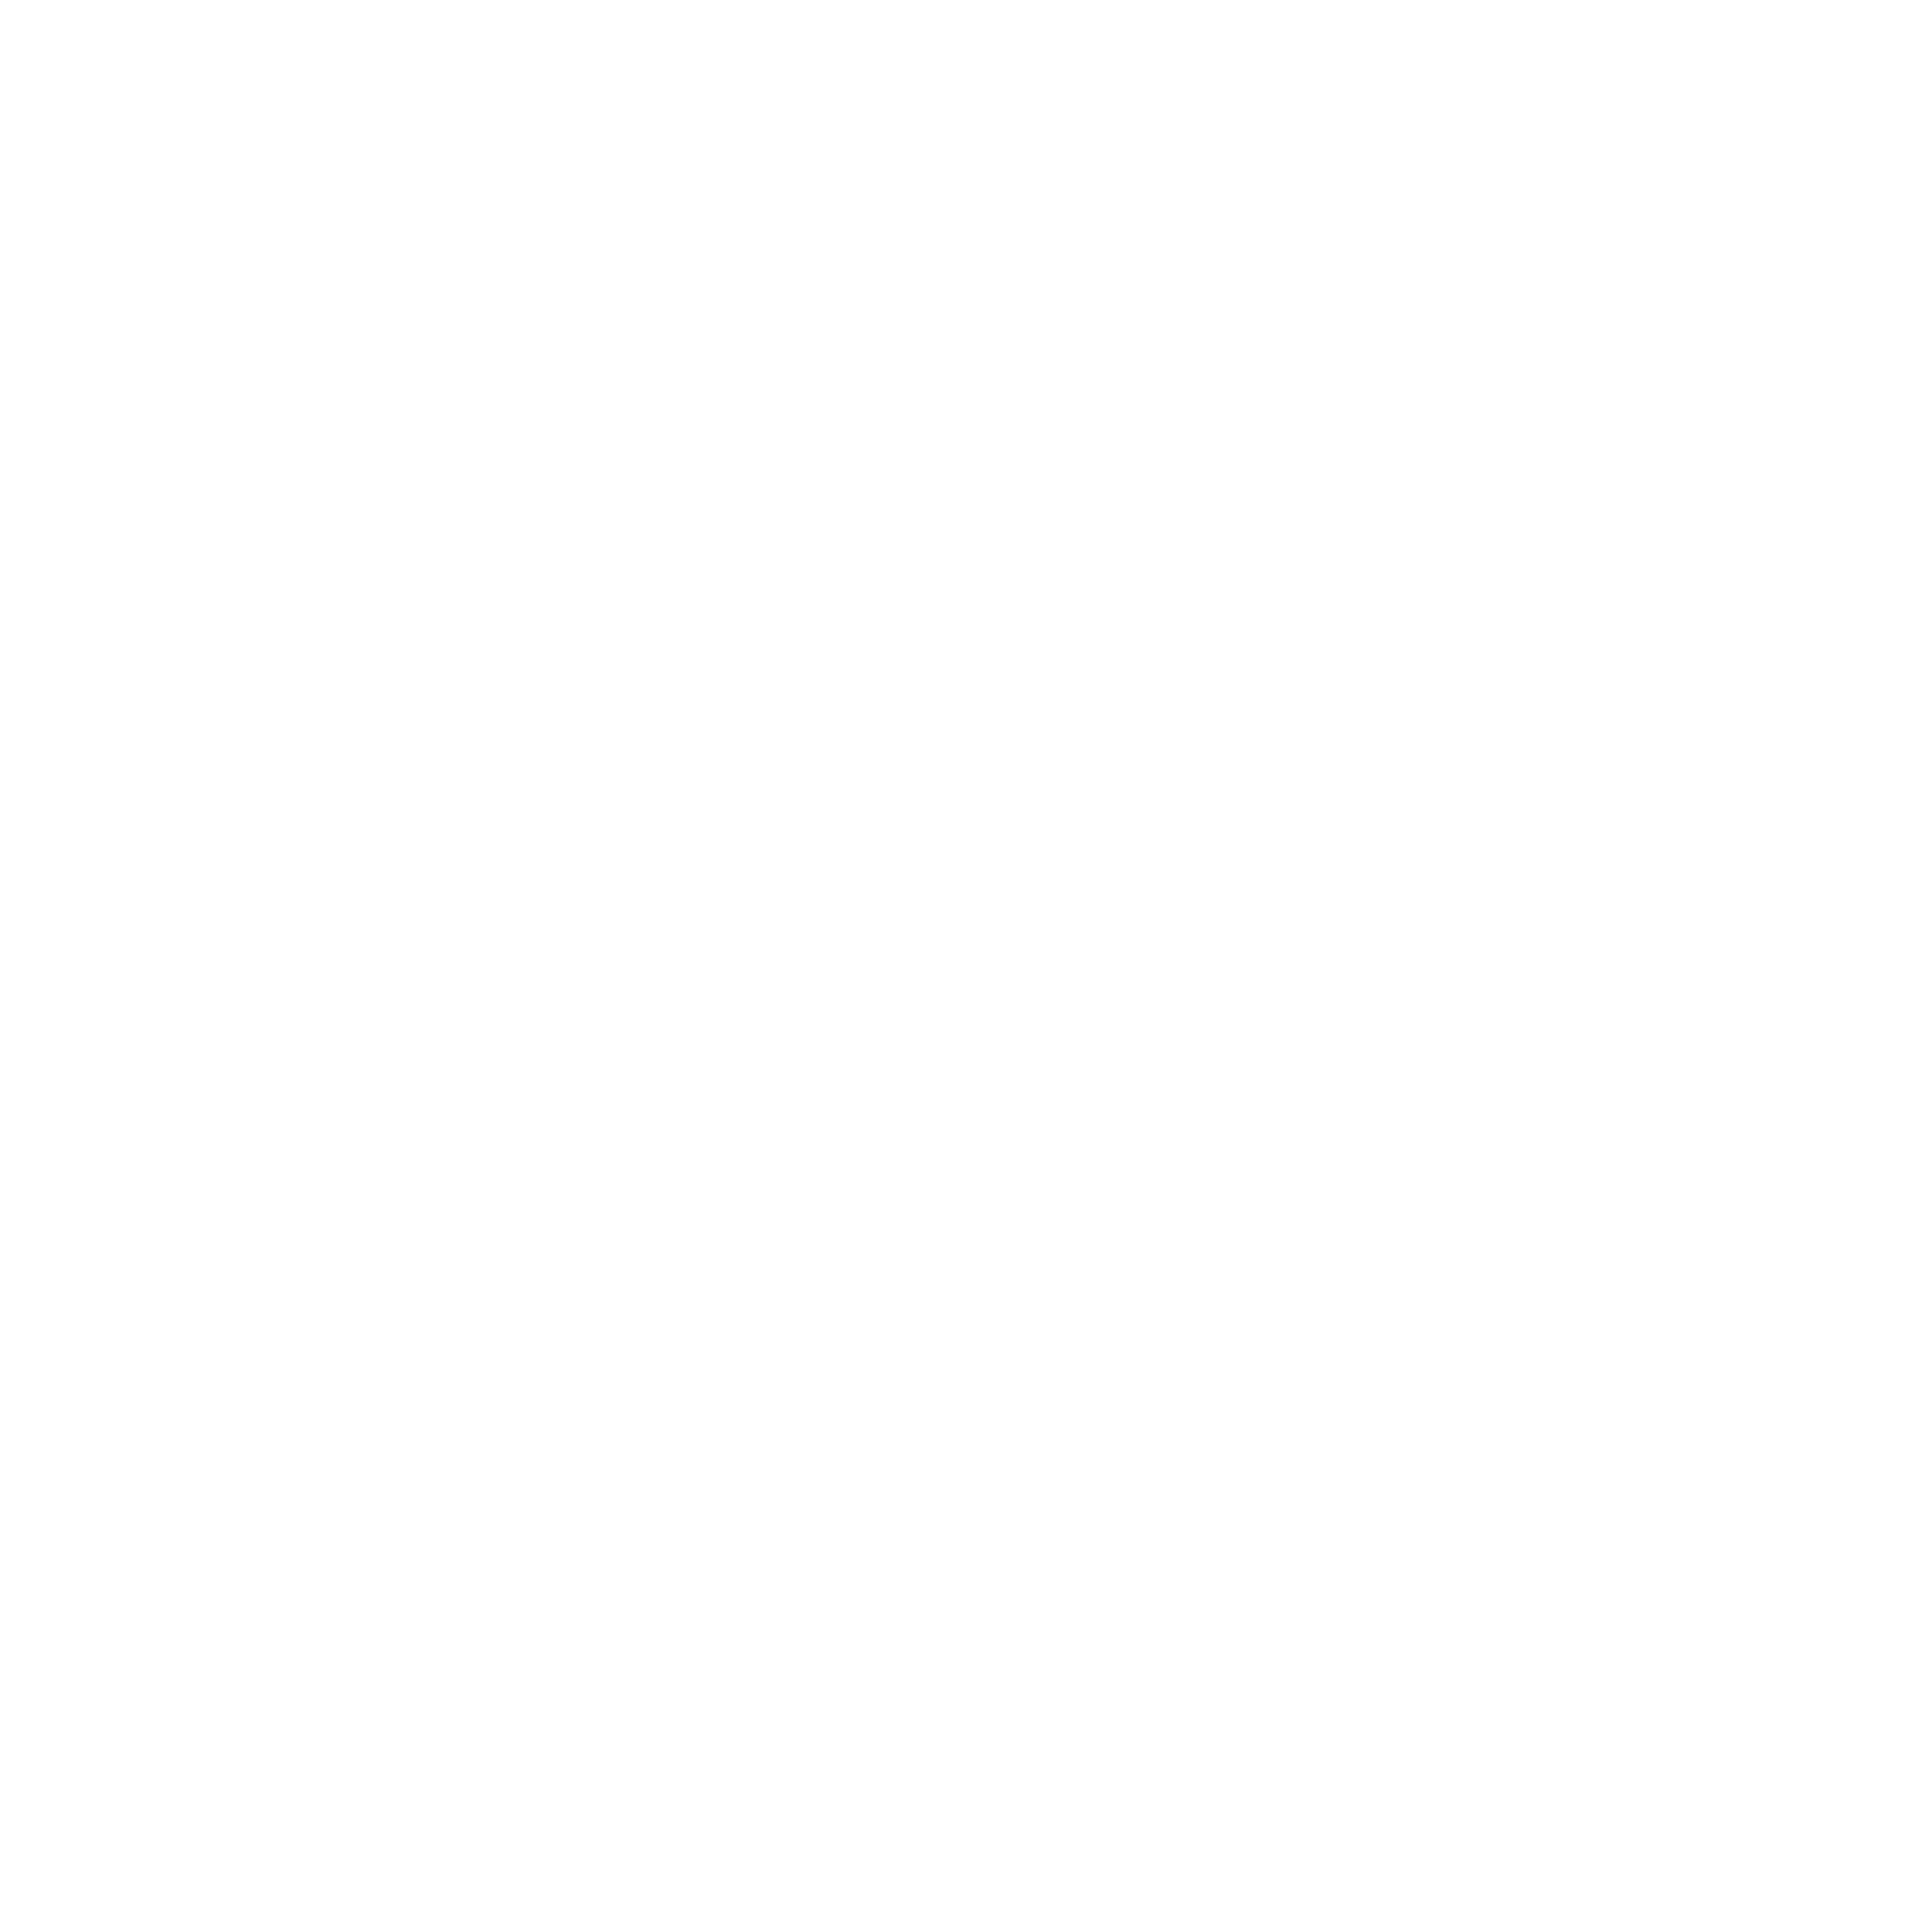 Gears clipart outline Png no Clipart outline Outline